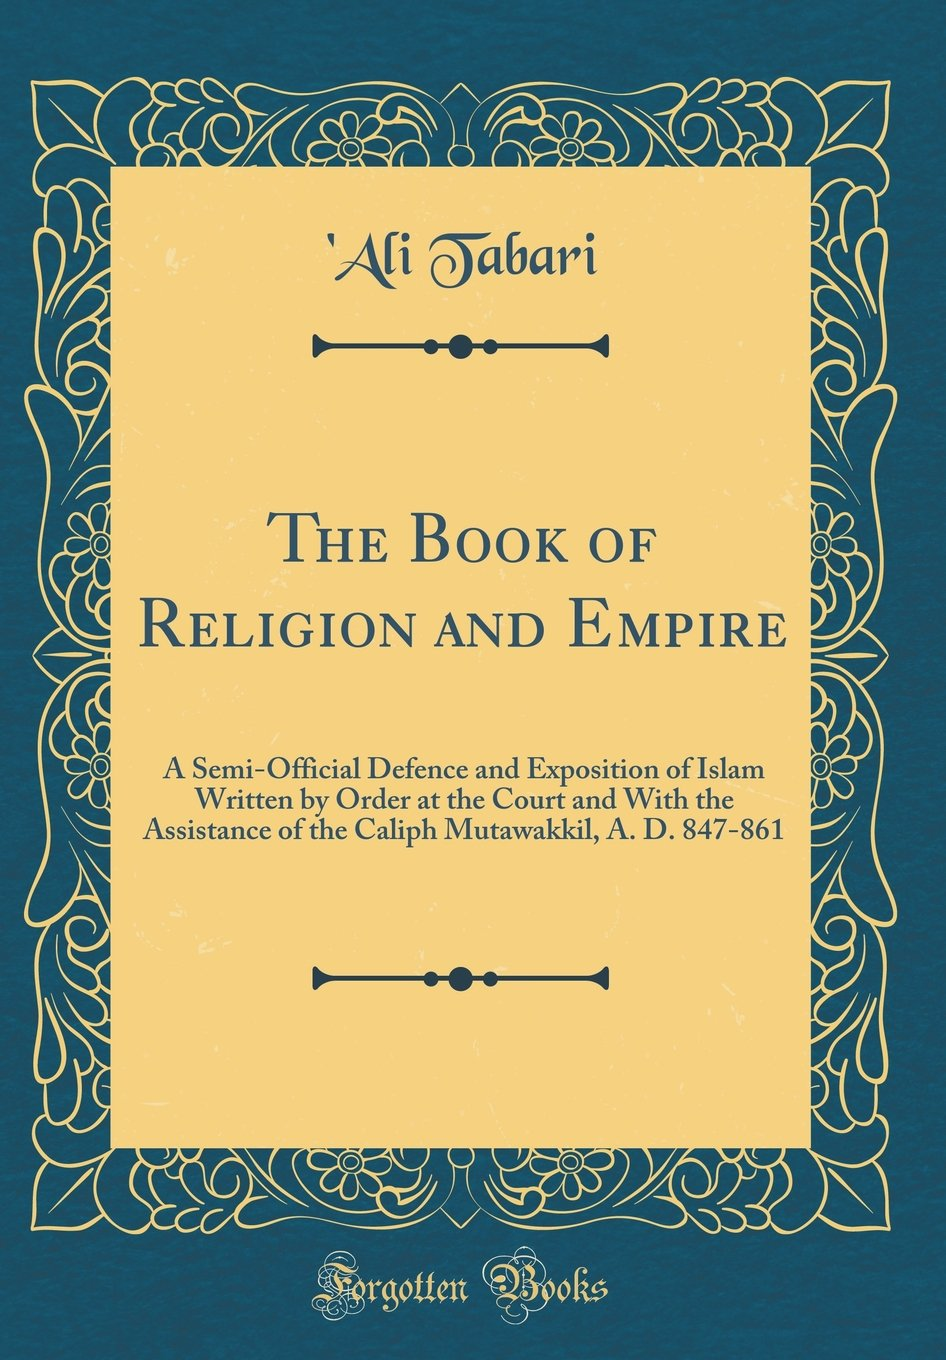 Read Online The Book of Religion and Empire: A Semi-Official Defence and Exposition of Islam Written by Order at the Court and With the Assistance of the Caliph Mutawakkil, A. D. 847-861 (Classic Reprint) PDF